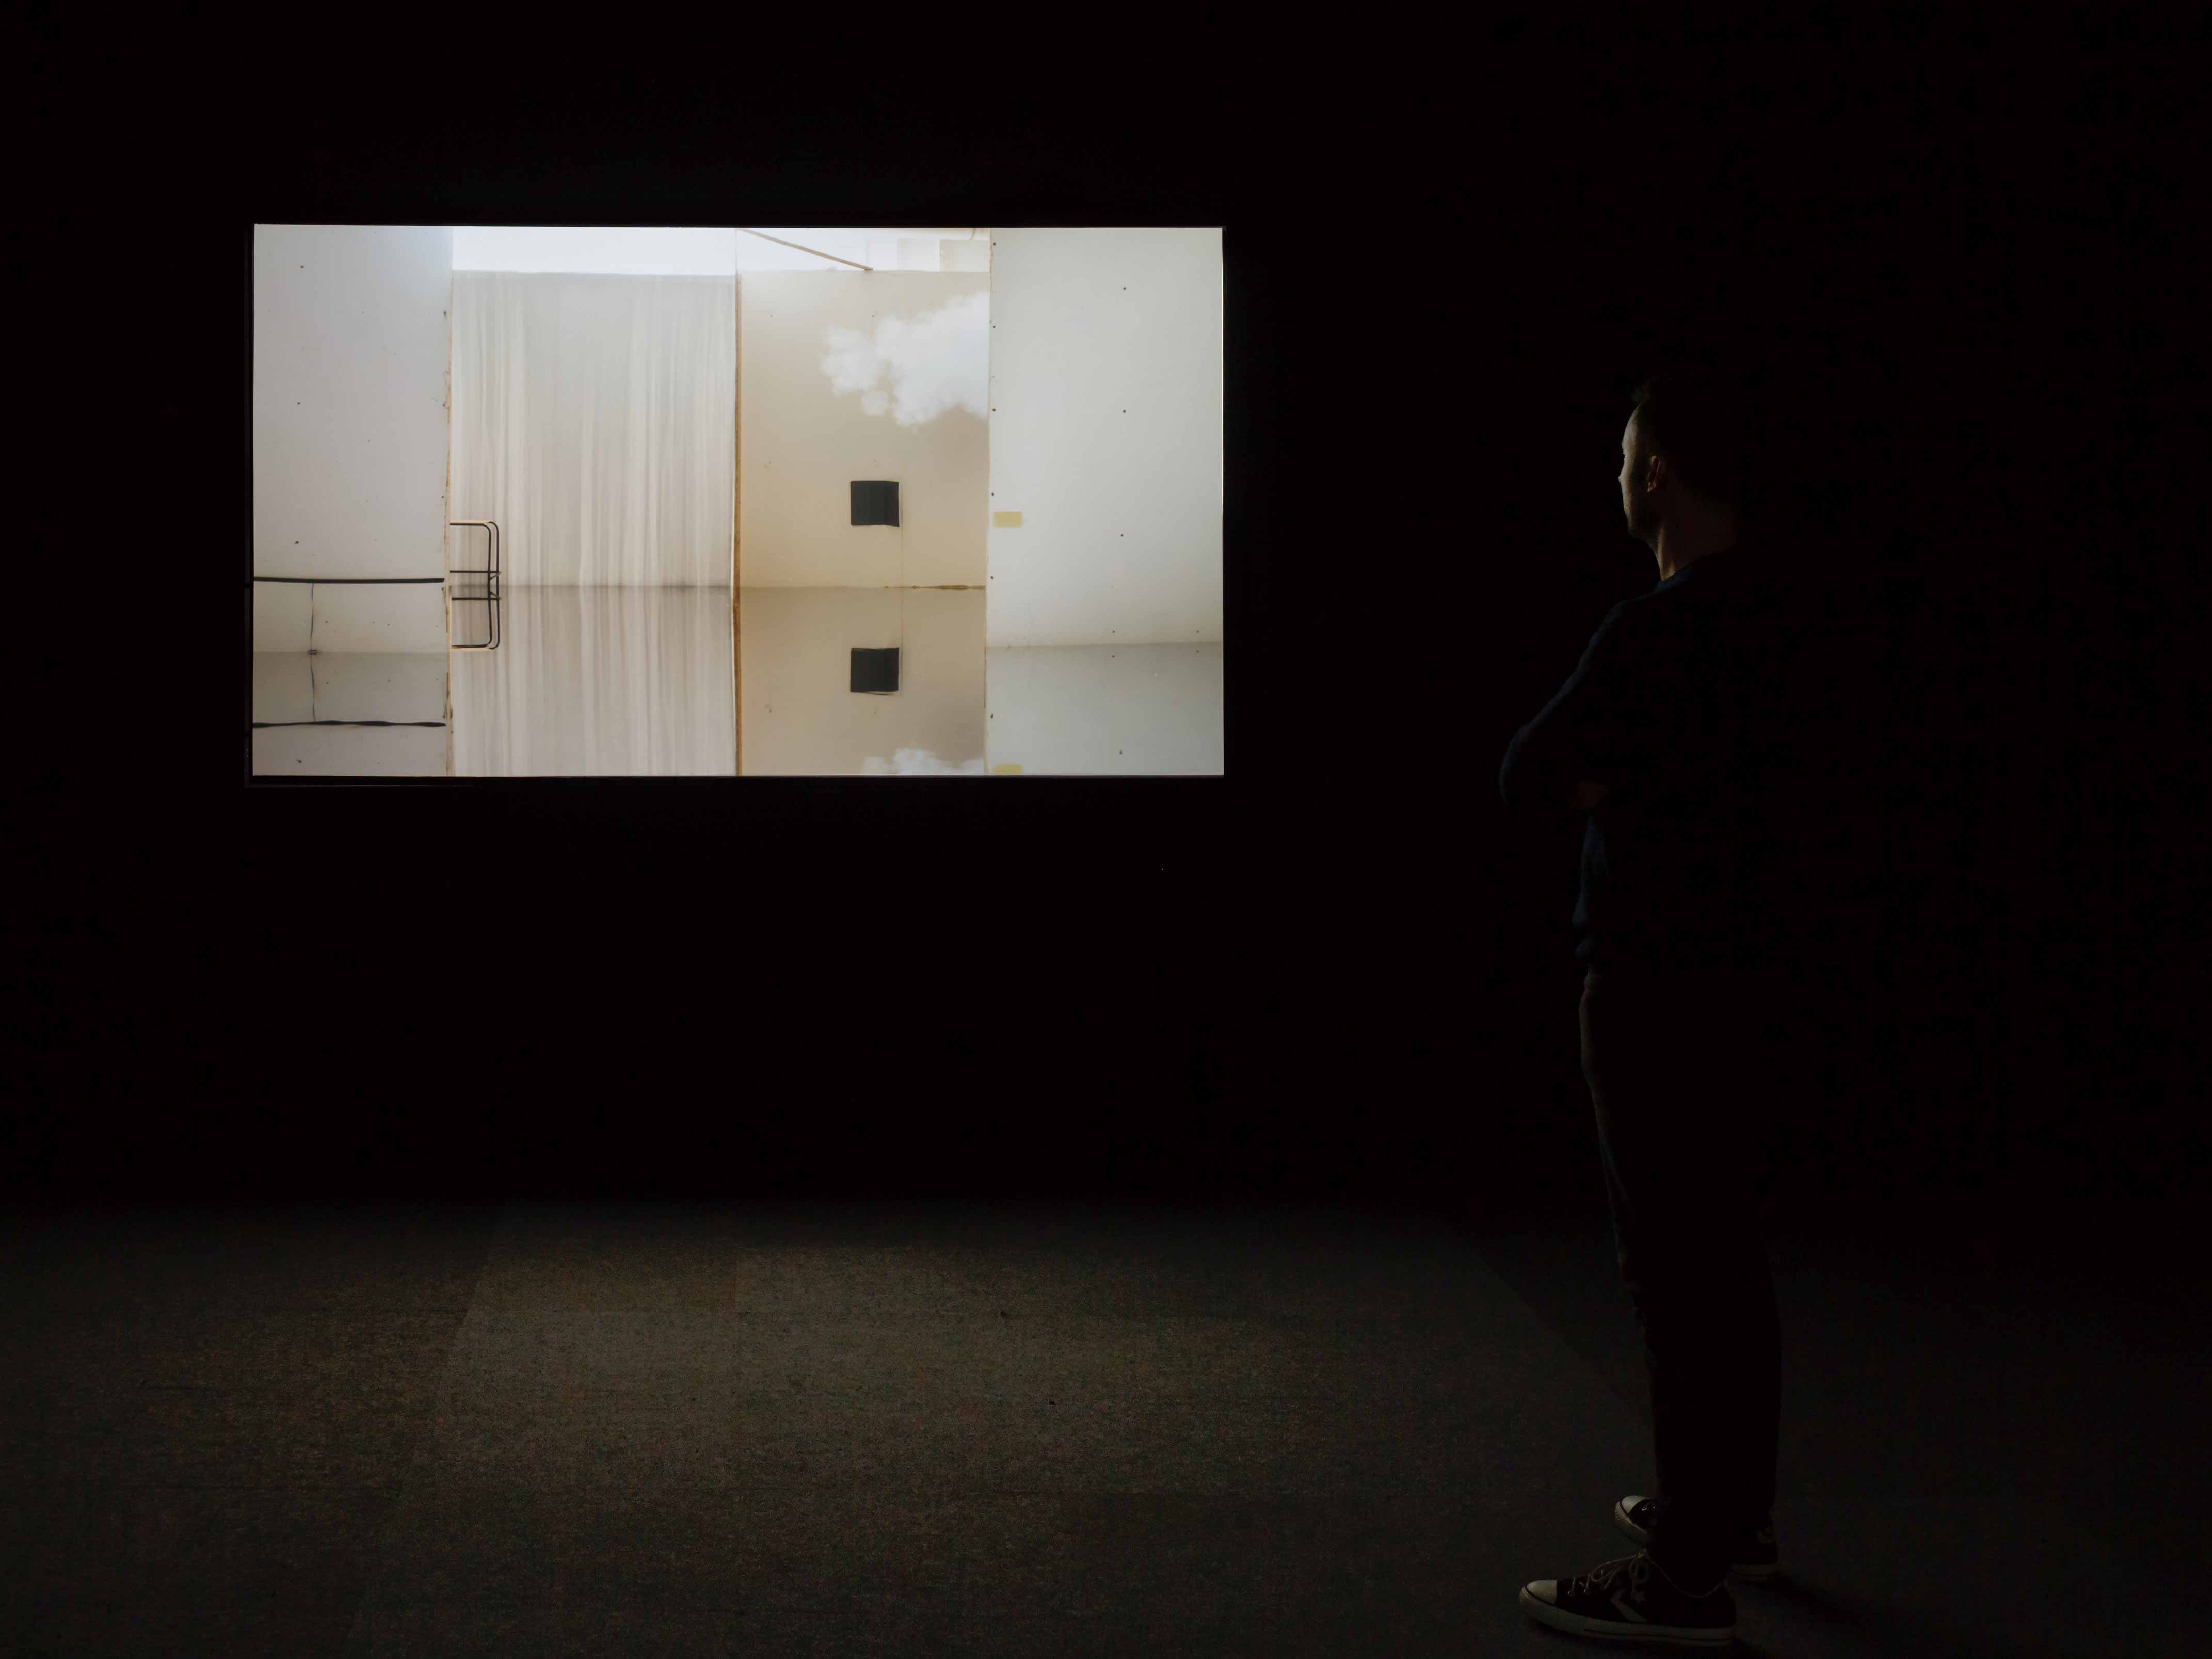 Ailbhe Ní Bhriain 'Reports to an Academy' four–screen installation, video & cgi composite, colour, sound, looped, 2015; installation view at The Royal Hibernian Academy, Dublin, Ireland, curated by Patrick T. Murphy, photograph by Mike Hannon